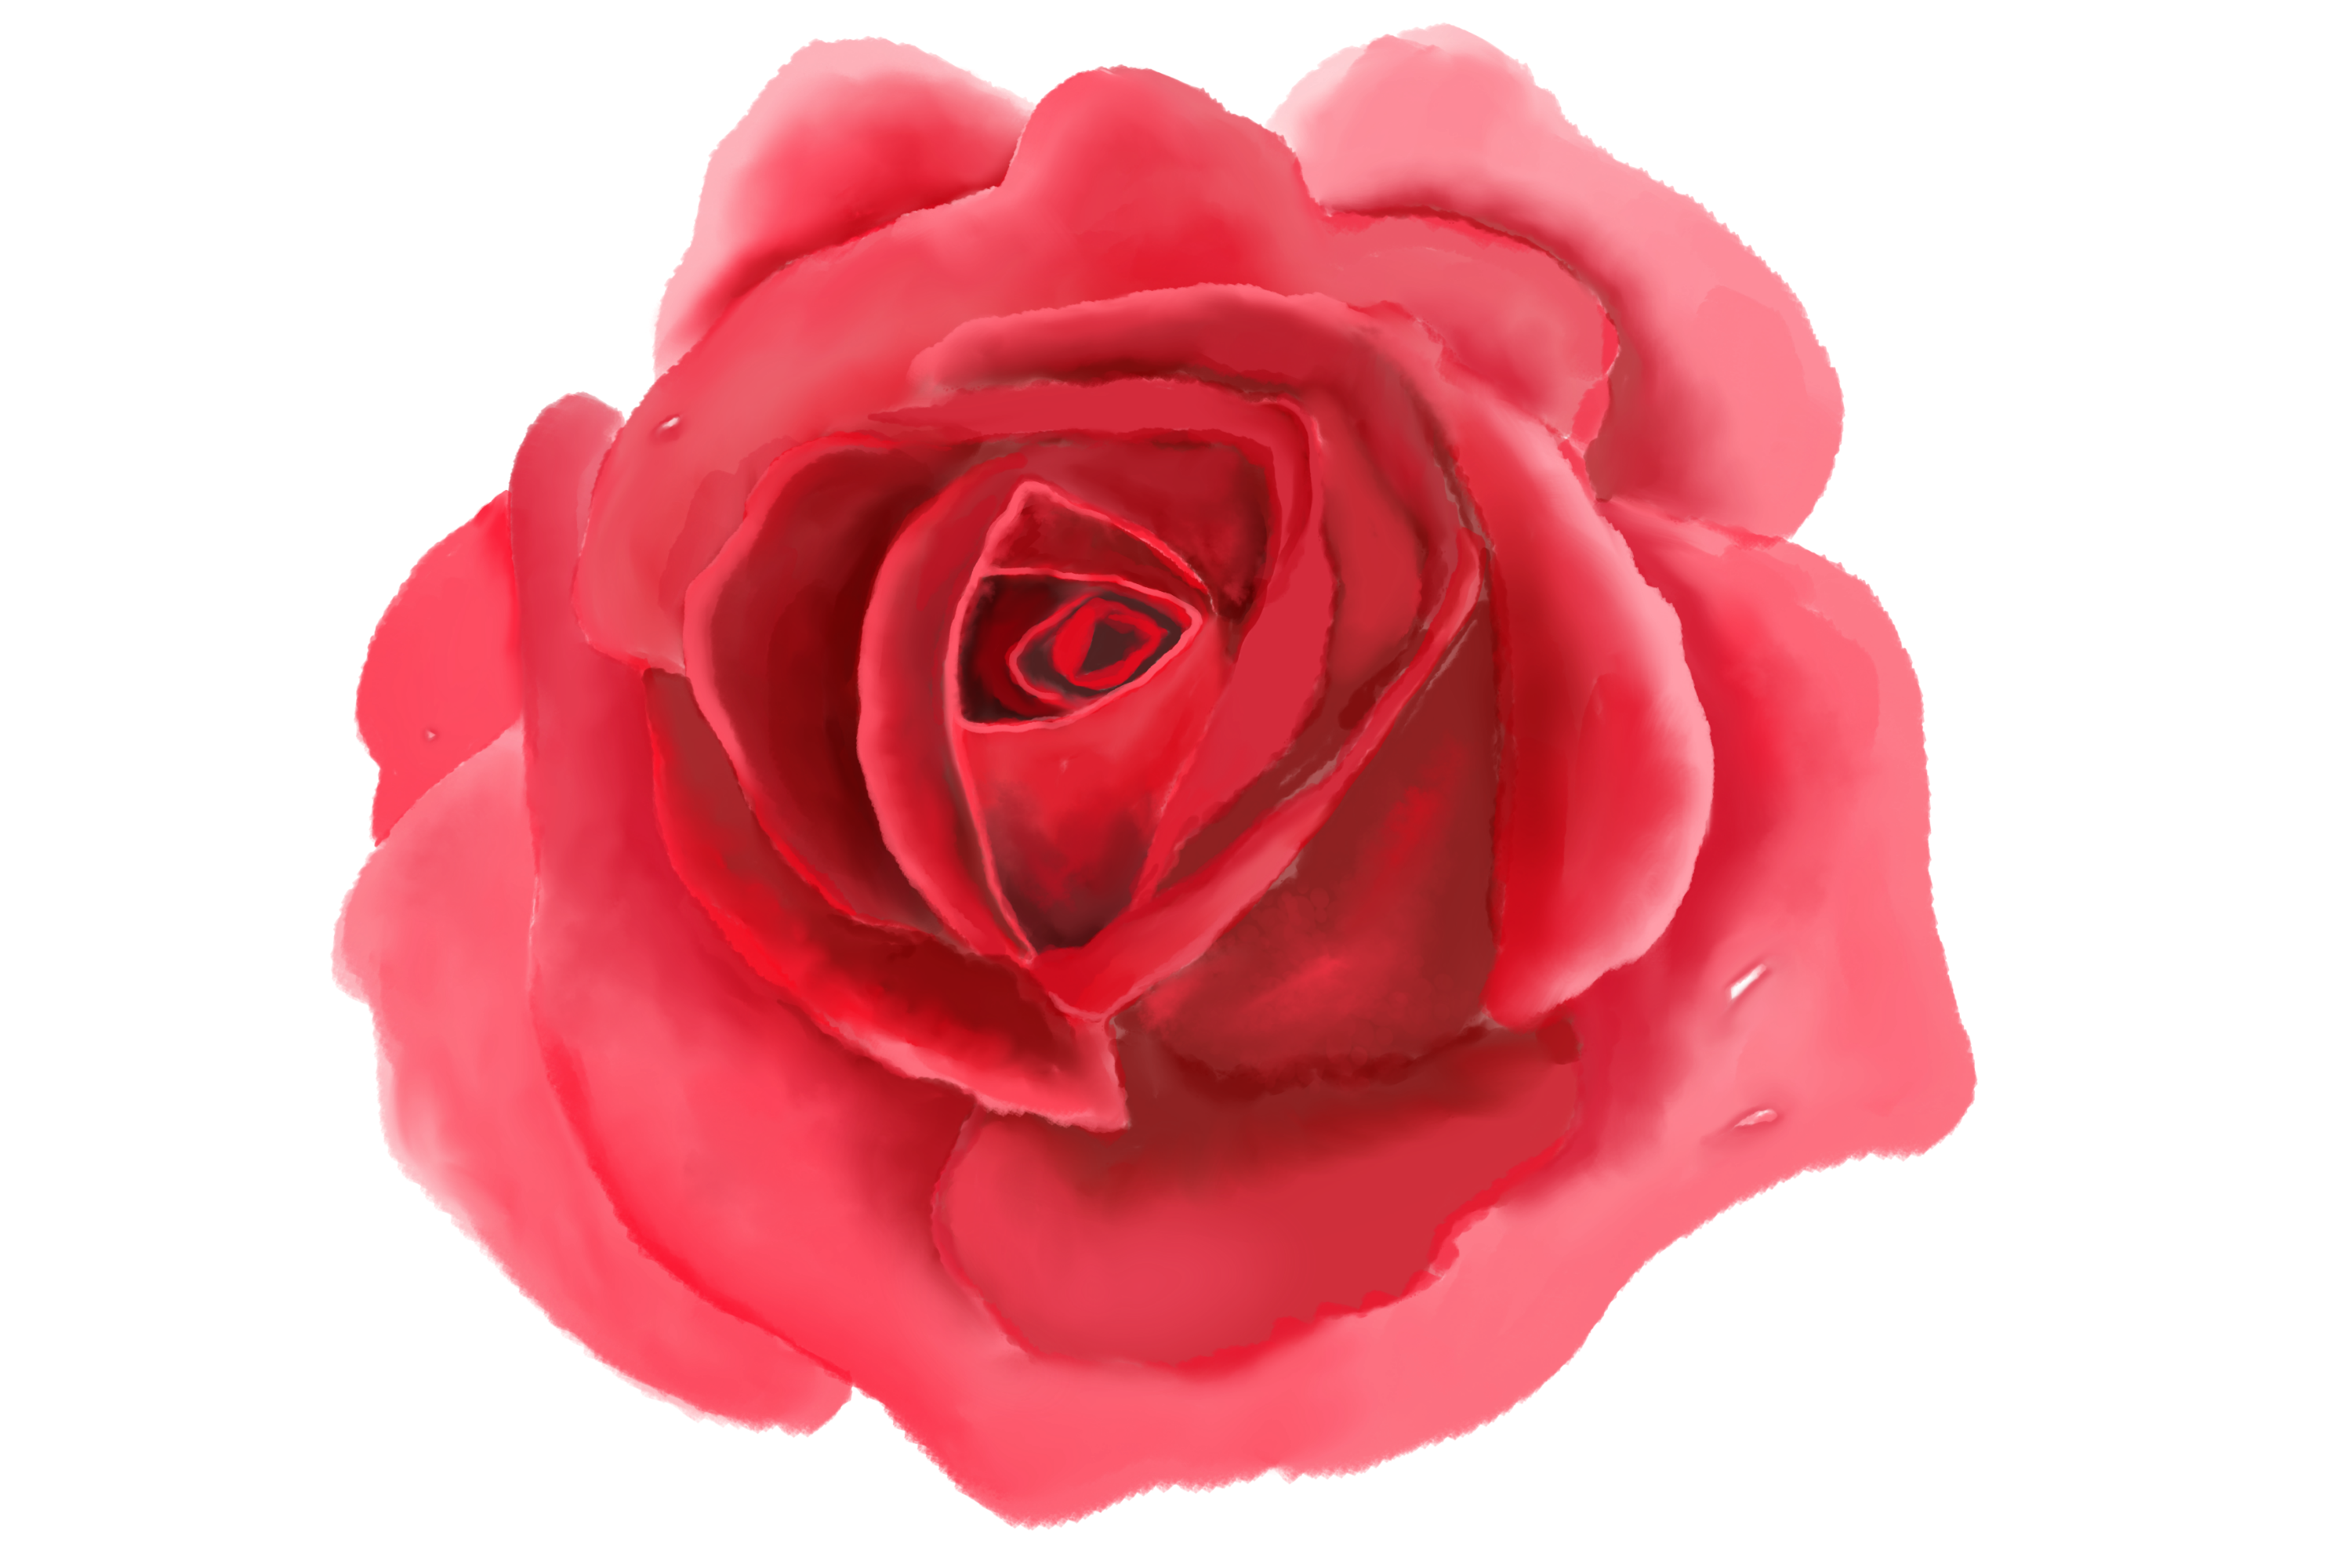 6 Digital Watercolor Roses | Clip Art Illustrations PNG/JPEG example image 6